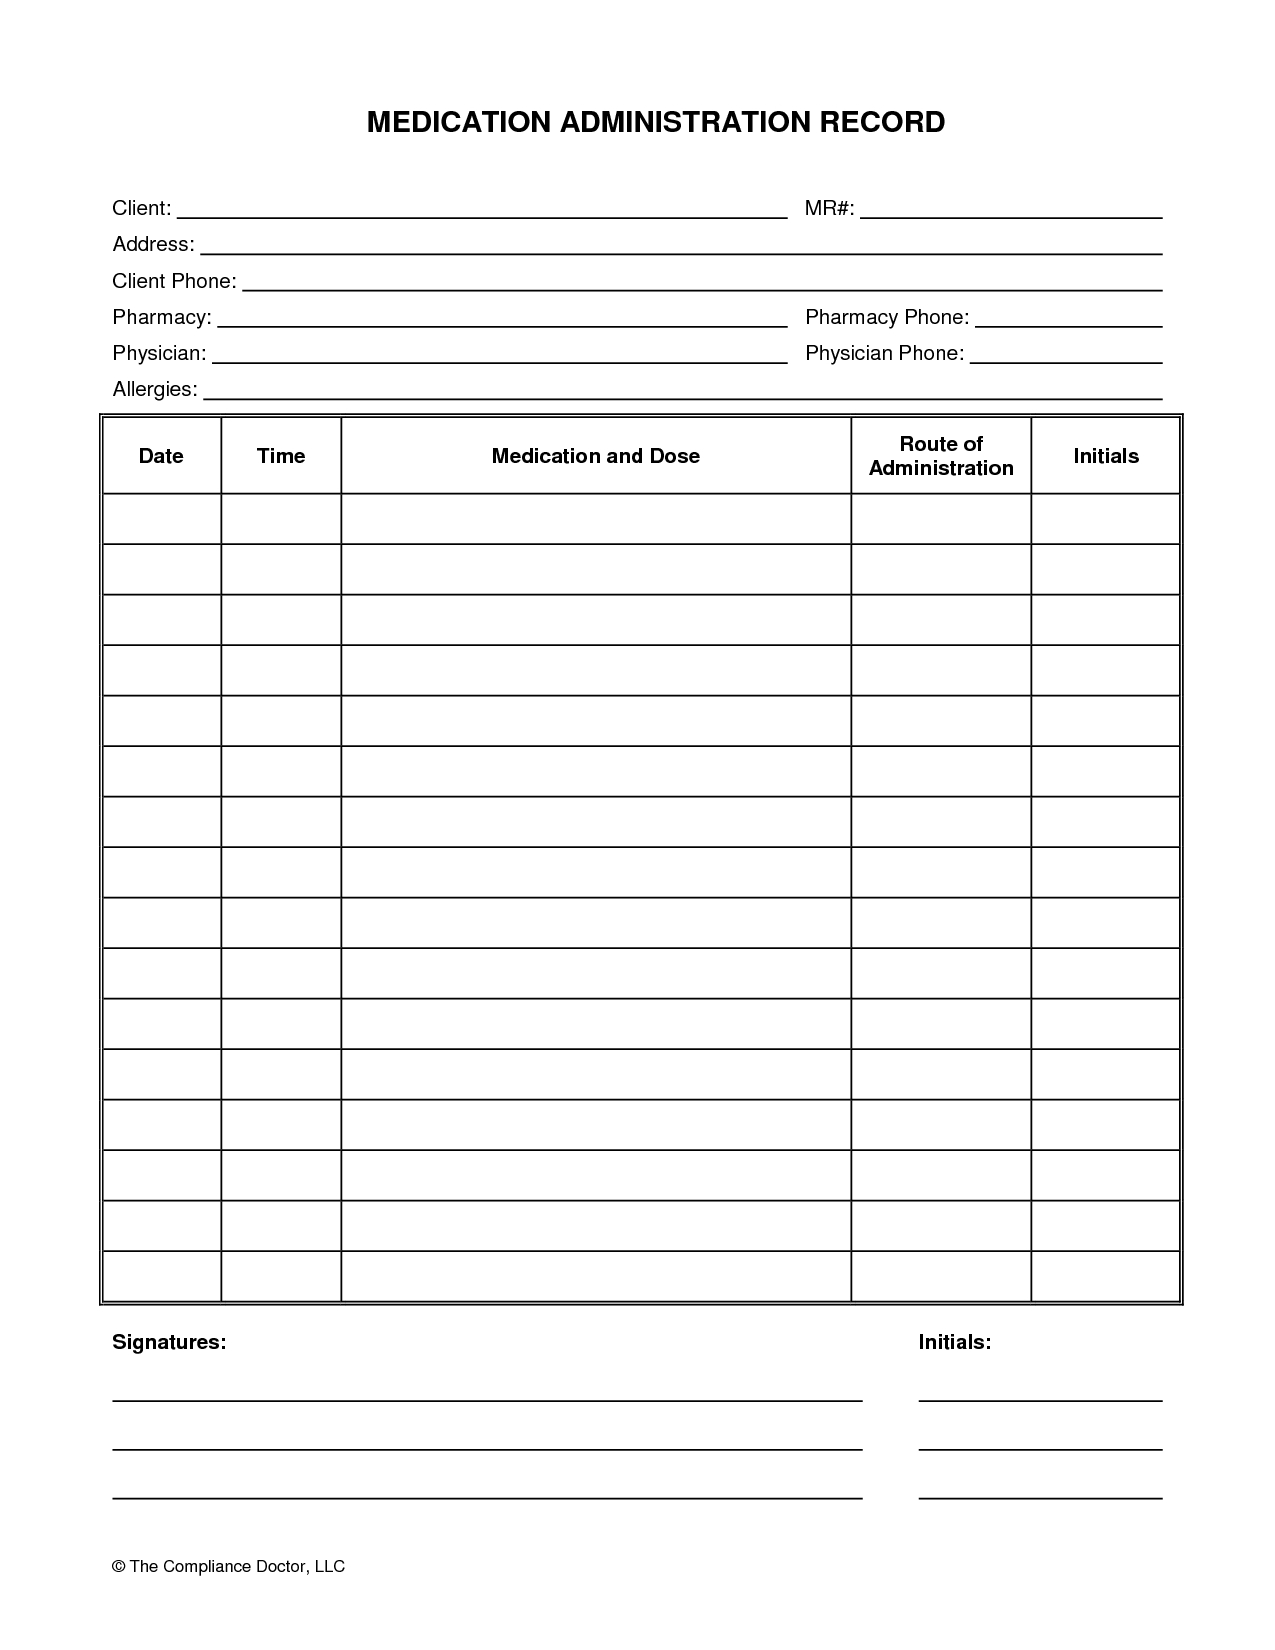 Medication Administration Record Form | Organization | Medication - Free Printable Daily Medication Chart